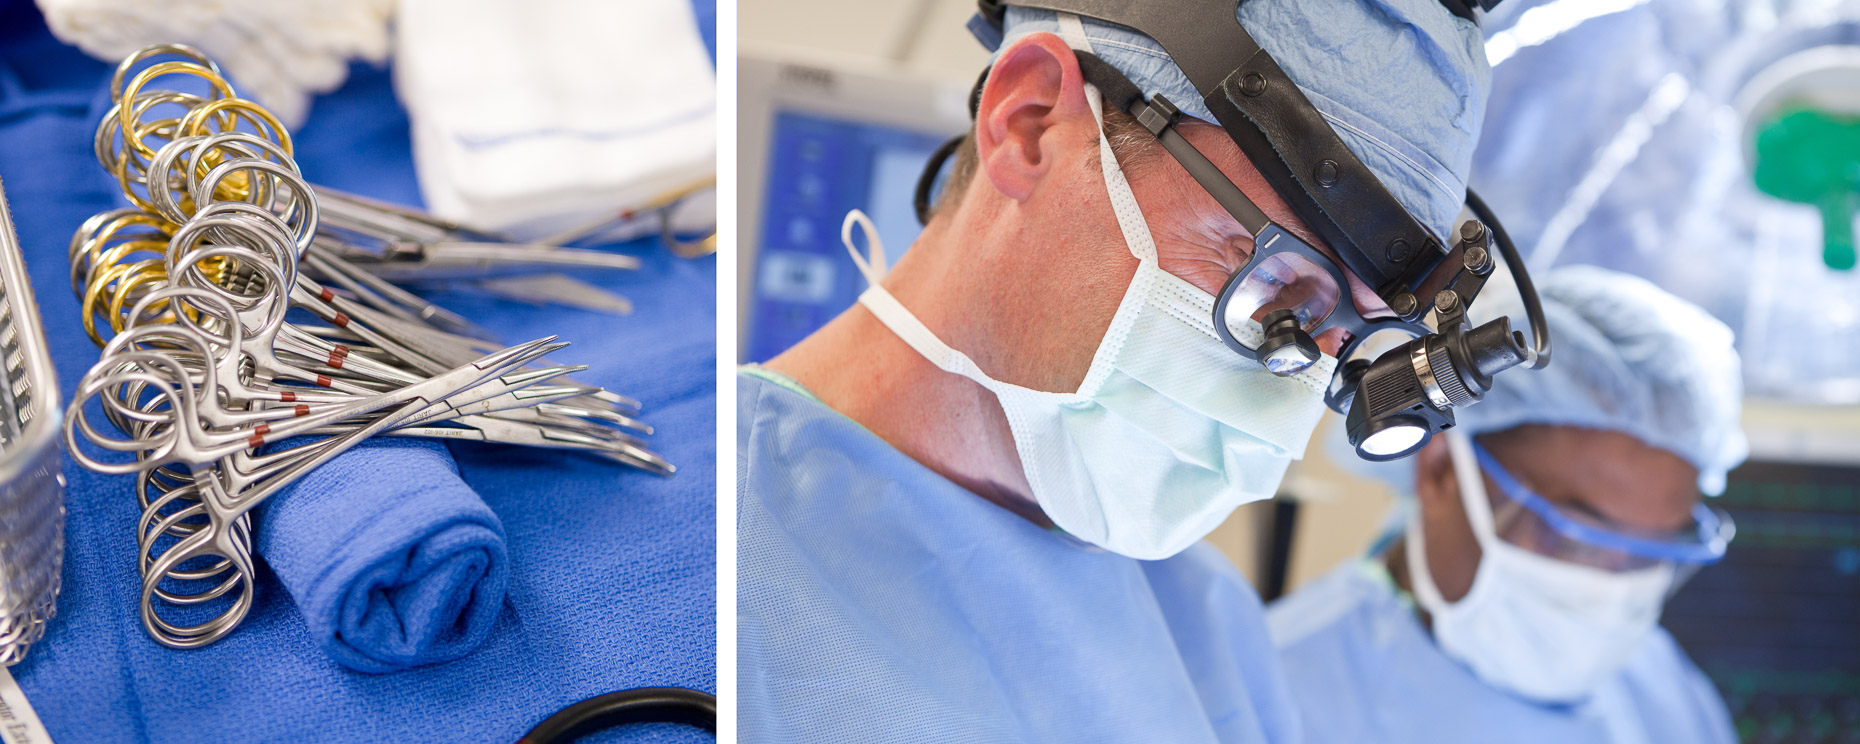 Surgical instruments on operating room tray and close up of surgeon during operation in hospital. Medical, healthcare. David Zaitz Photography.